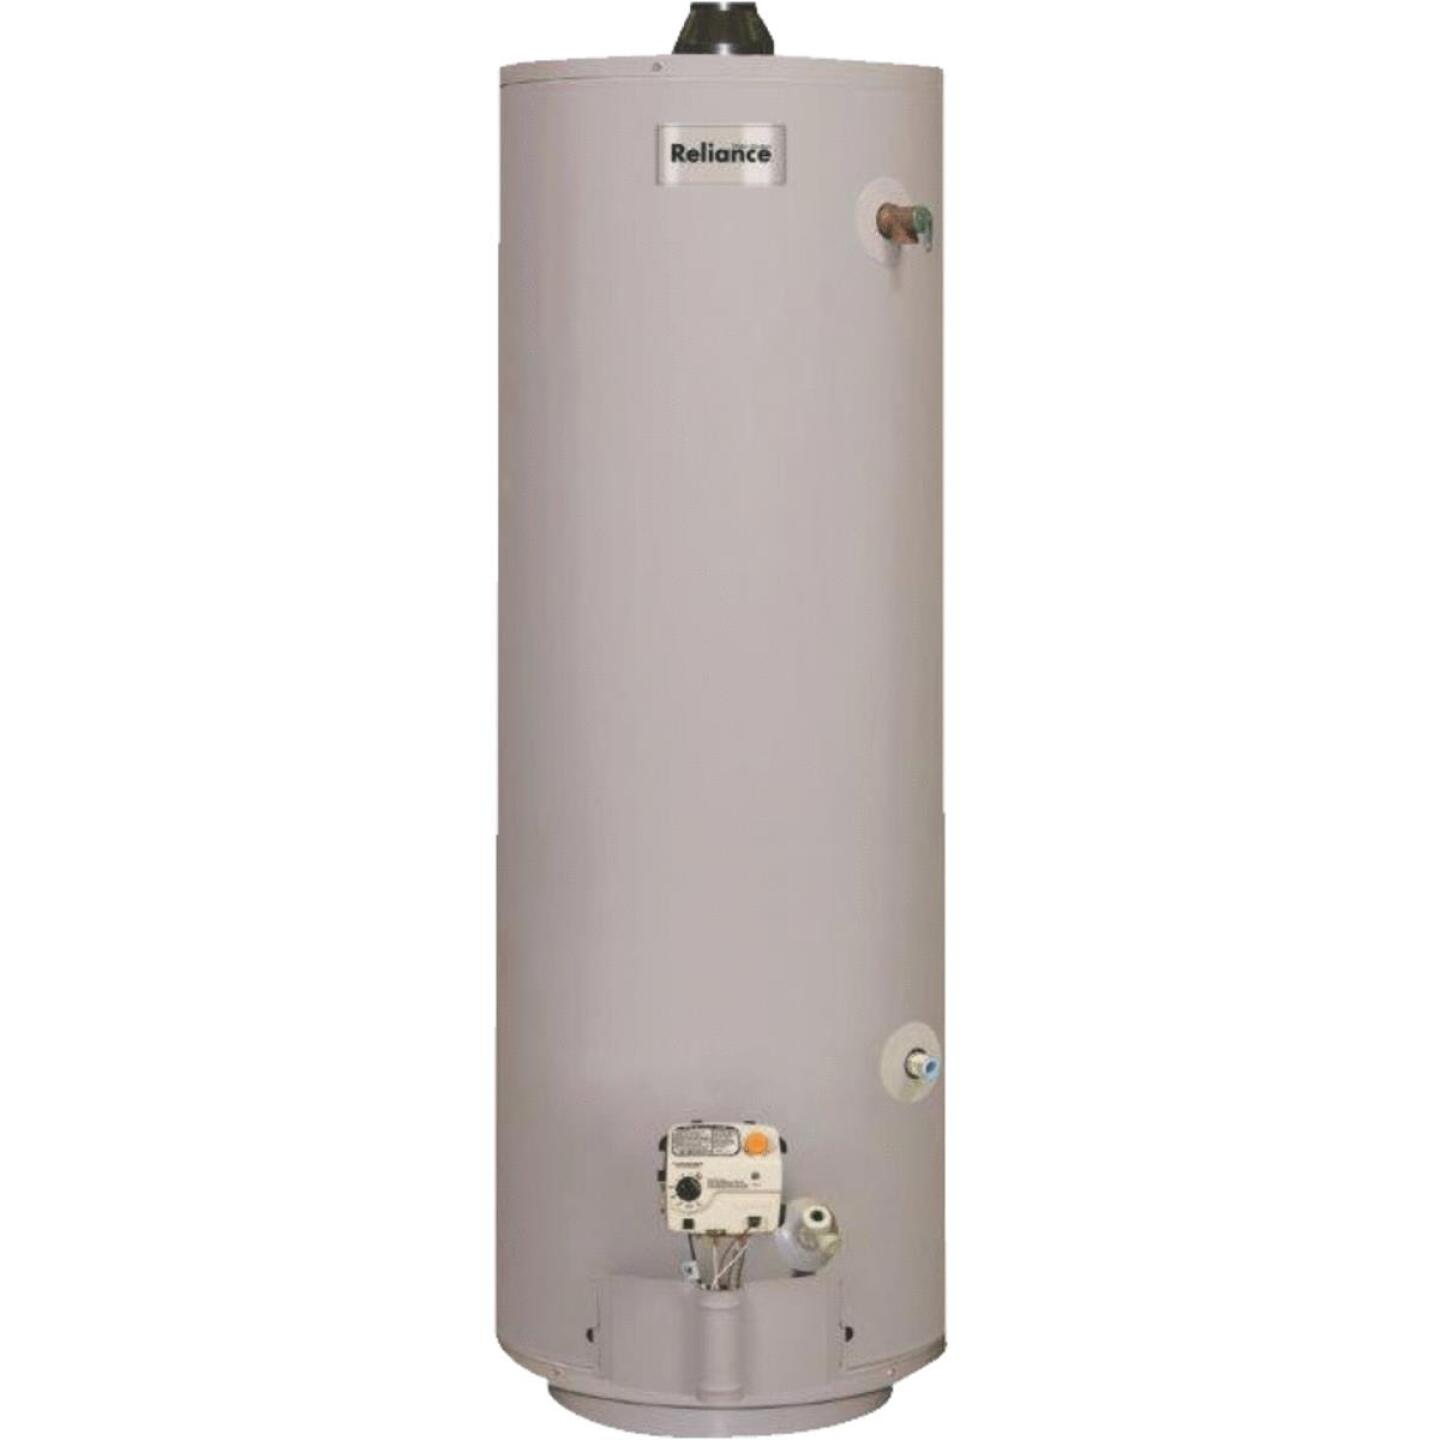 Reliance 30 Gal. Tall 6yr 30,000 BTU Mobile Home Direct Vent Natural Gas/Liquid Propane Water Heater Image 1